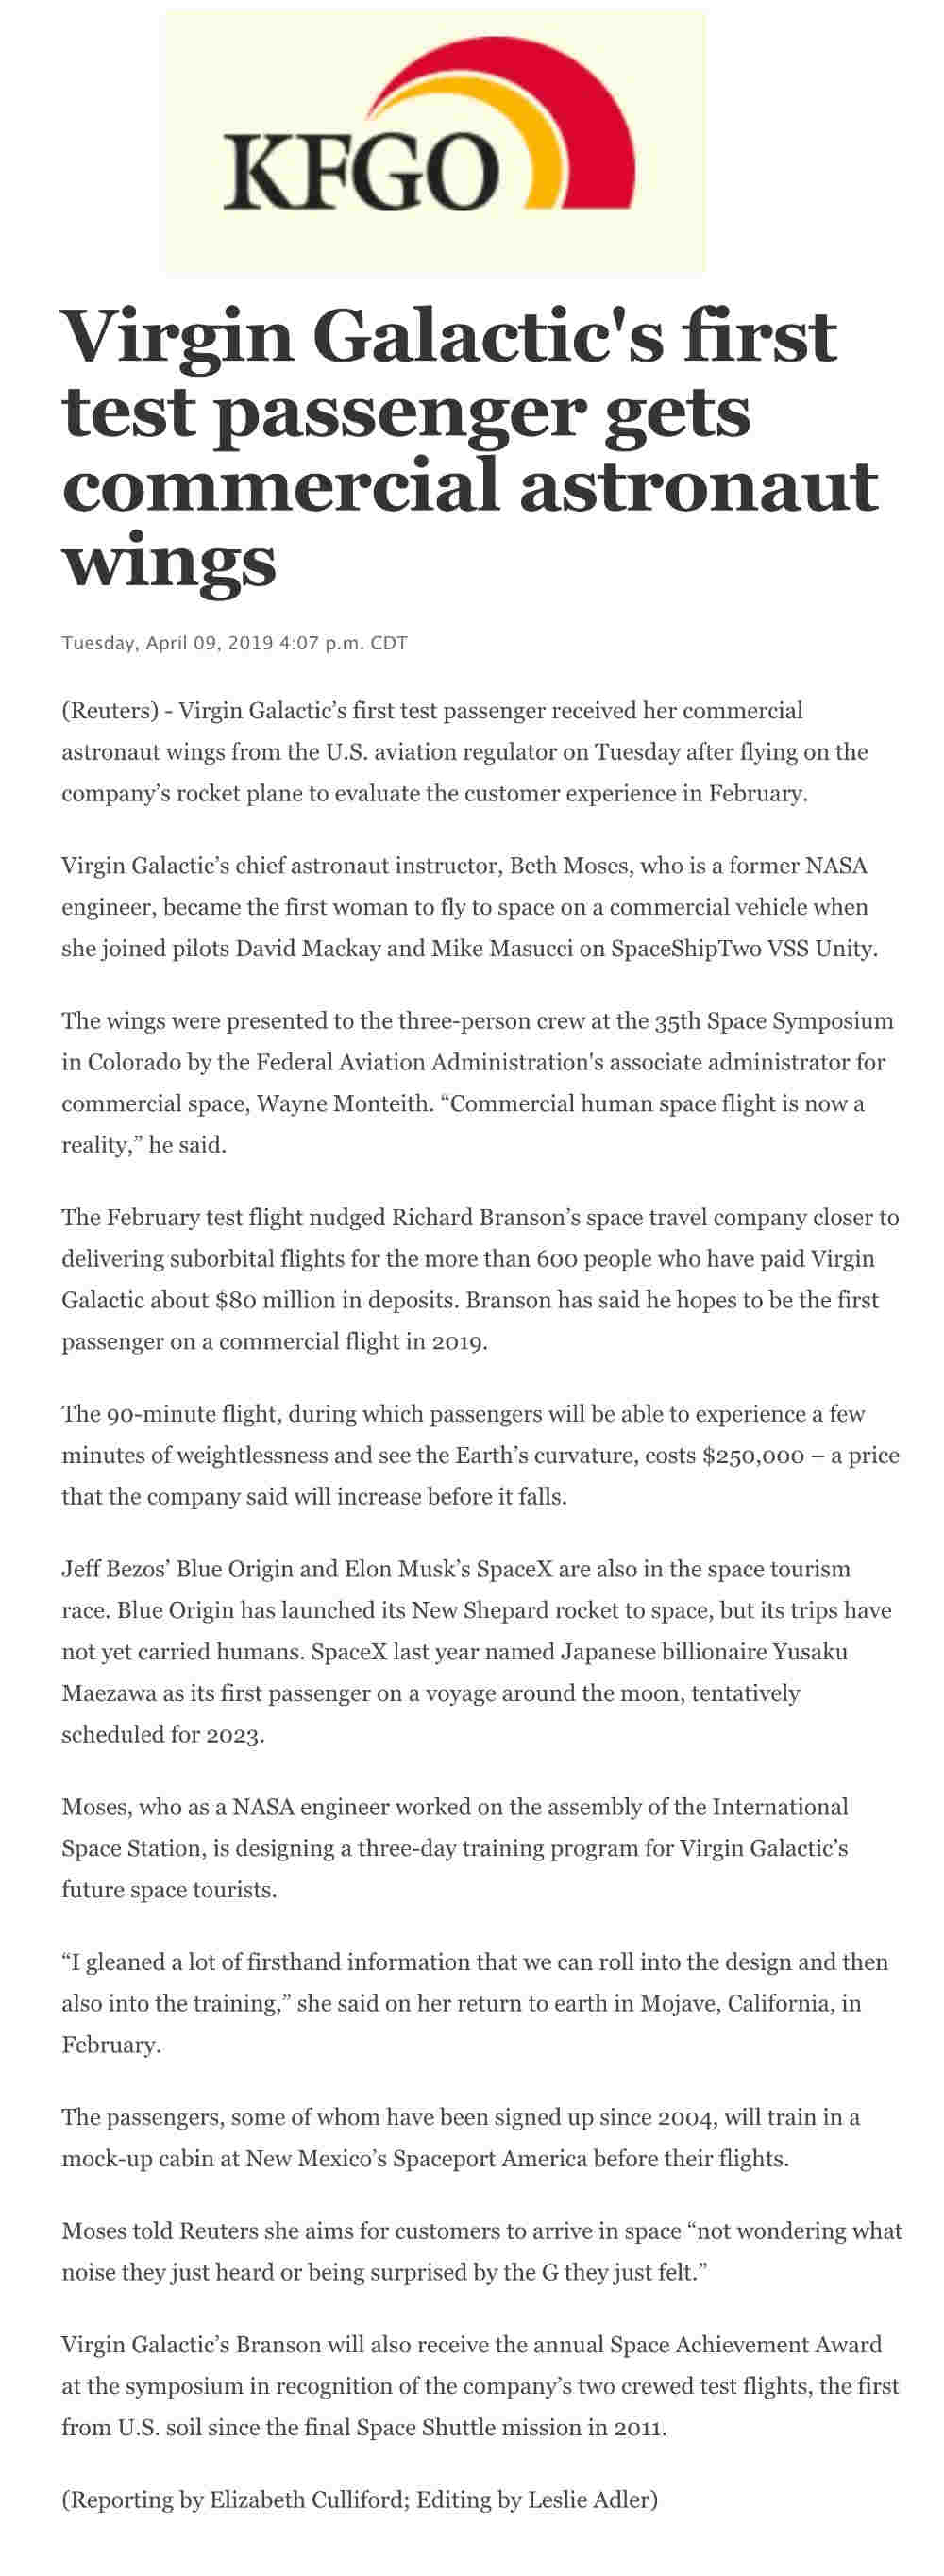 Beth Moses of Virgin Galactic gets astronaut wings